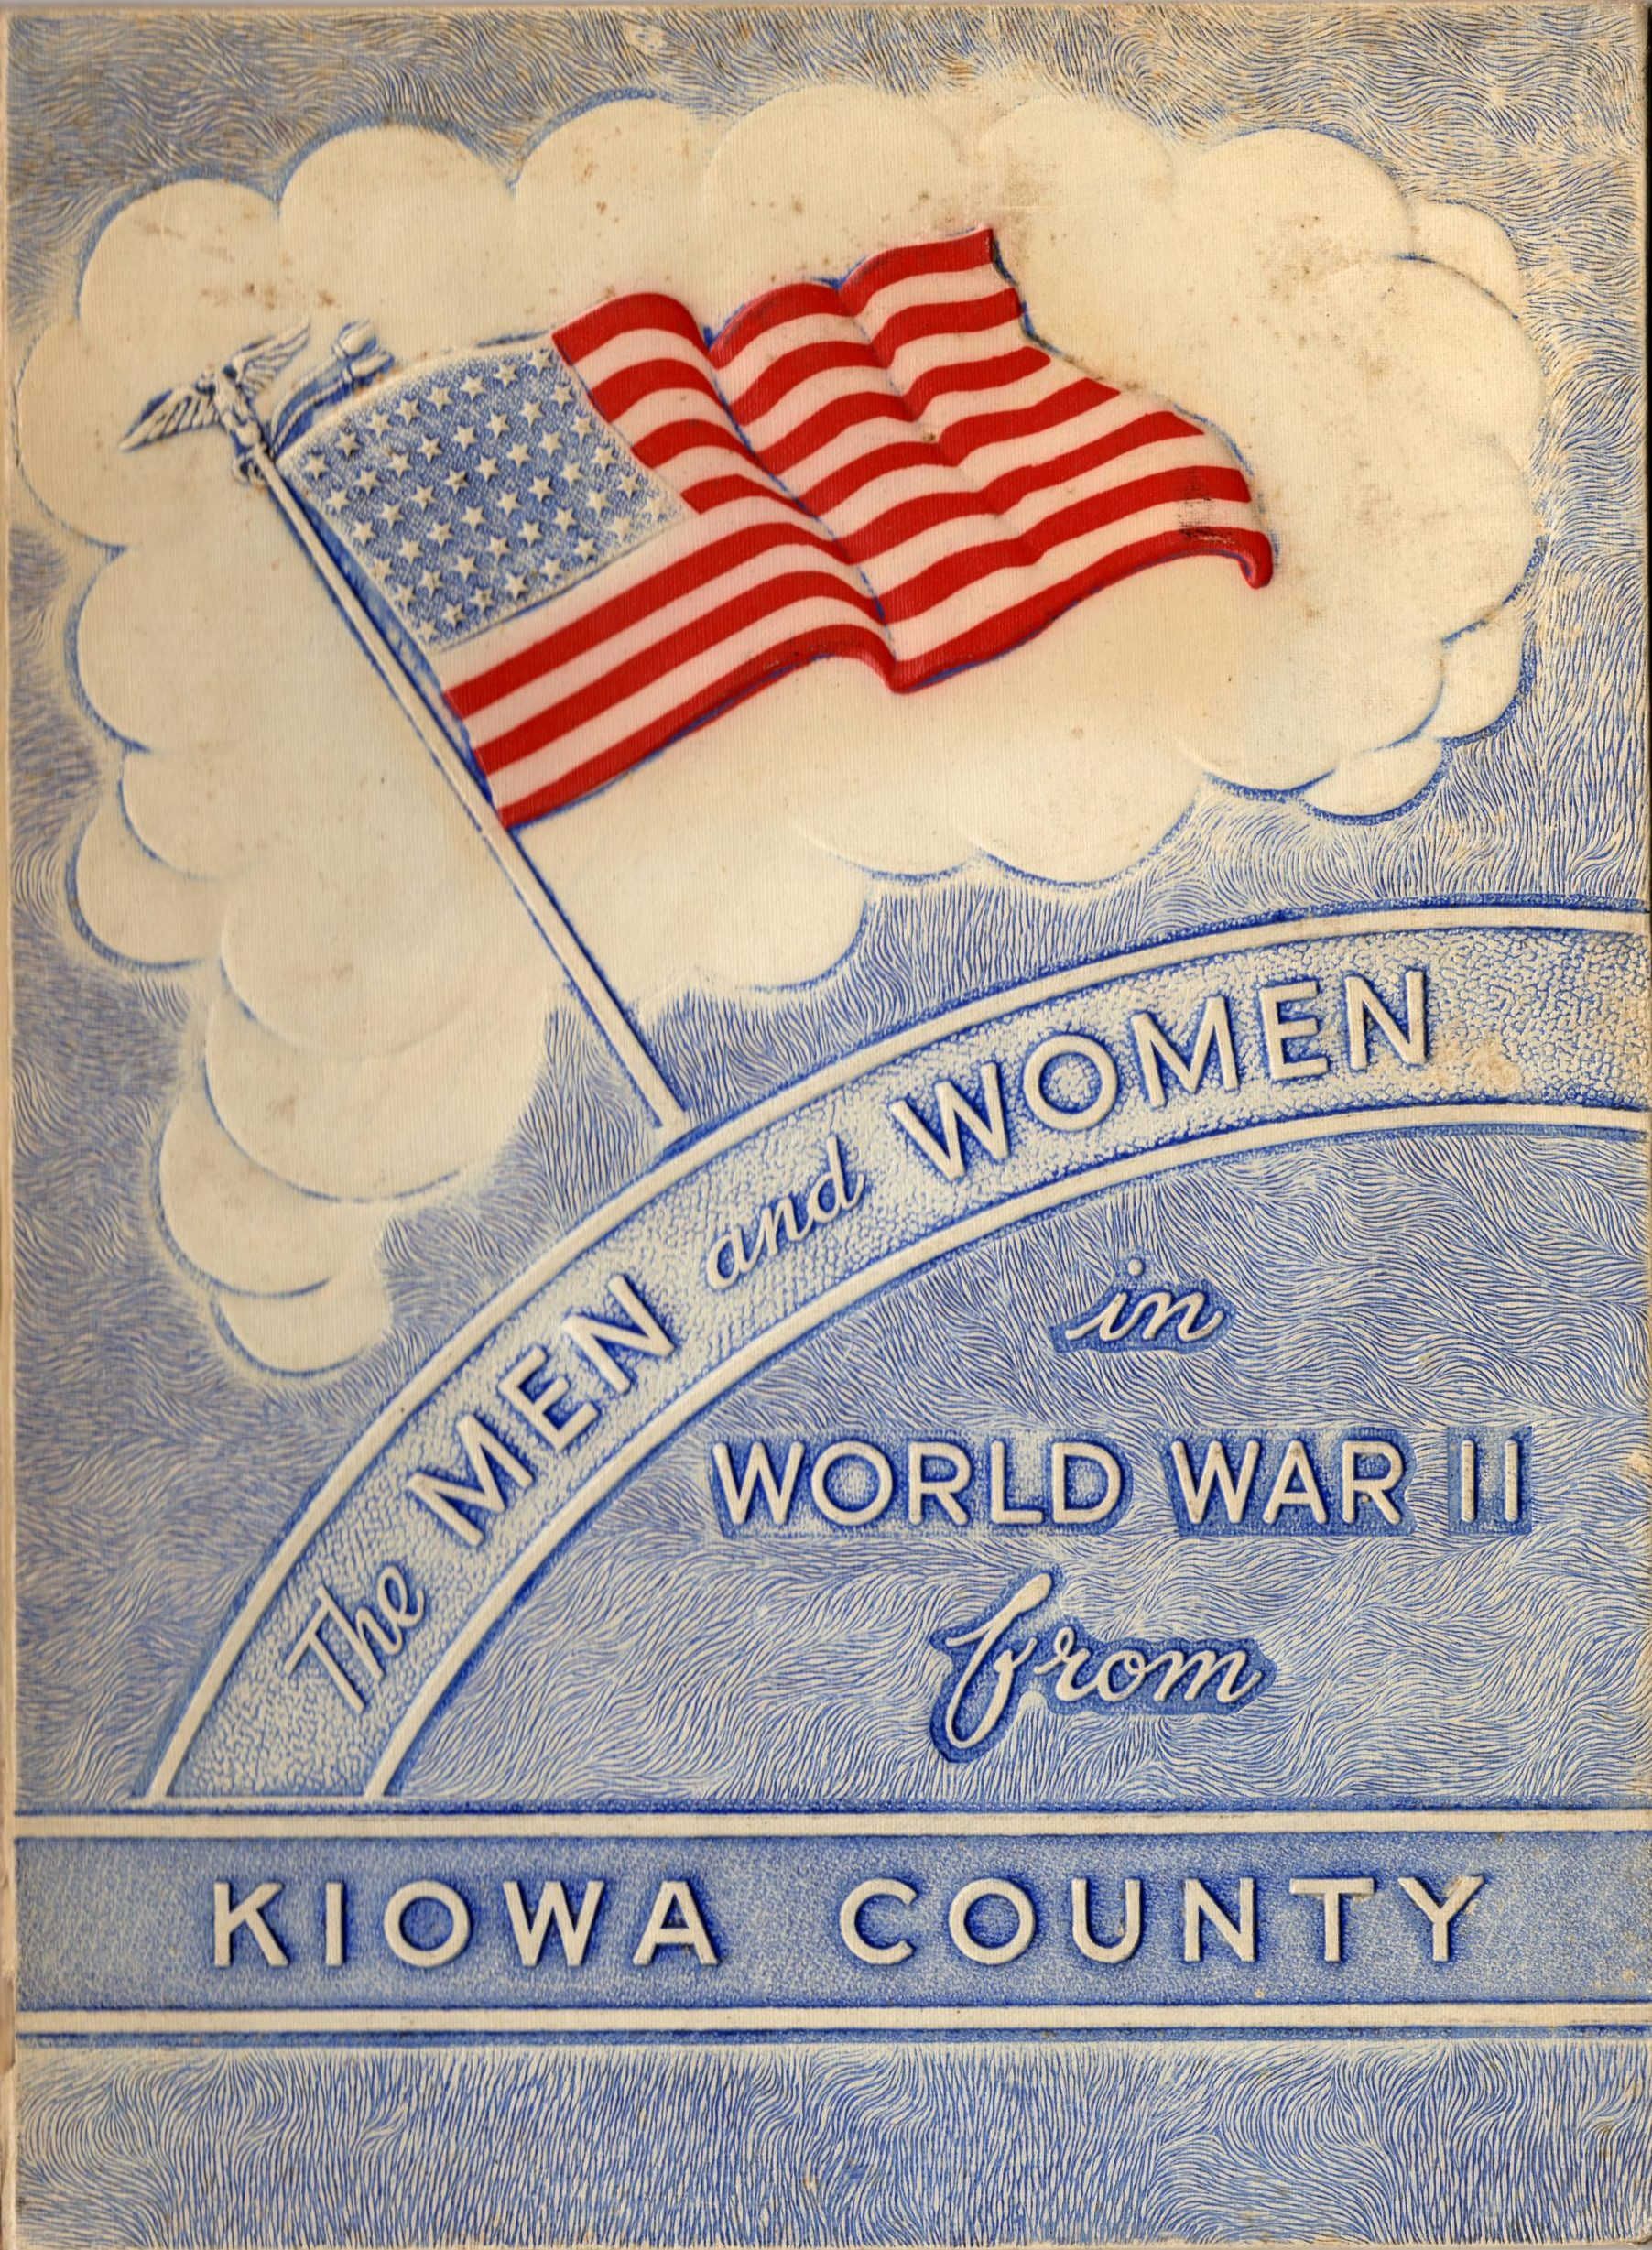 Men and Women in the Armed Forces from Kiowa County Oklahoma